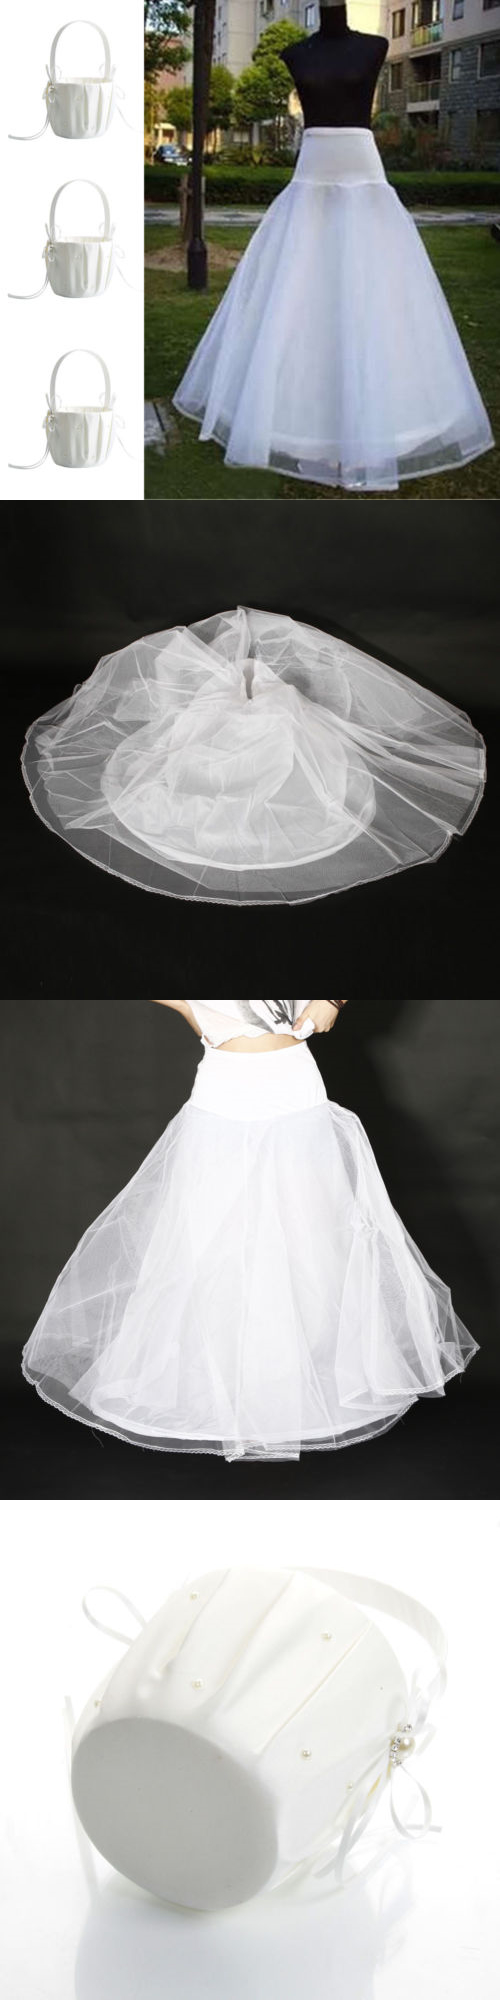 Petticoat for wedding dress  Slips Petticoats and Hoops  Hot Girl Basket Pcs Satin Ivory